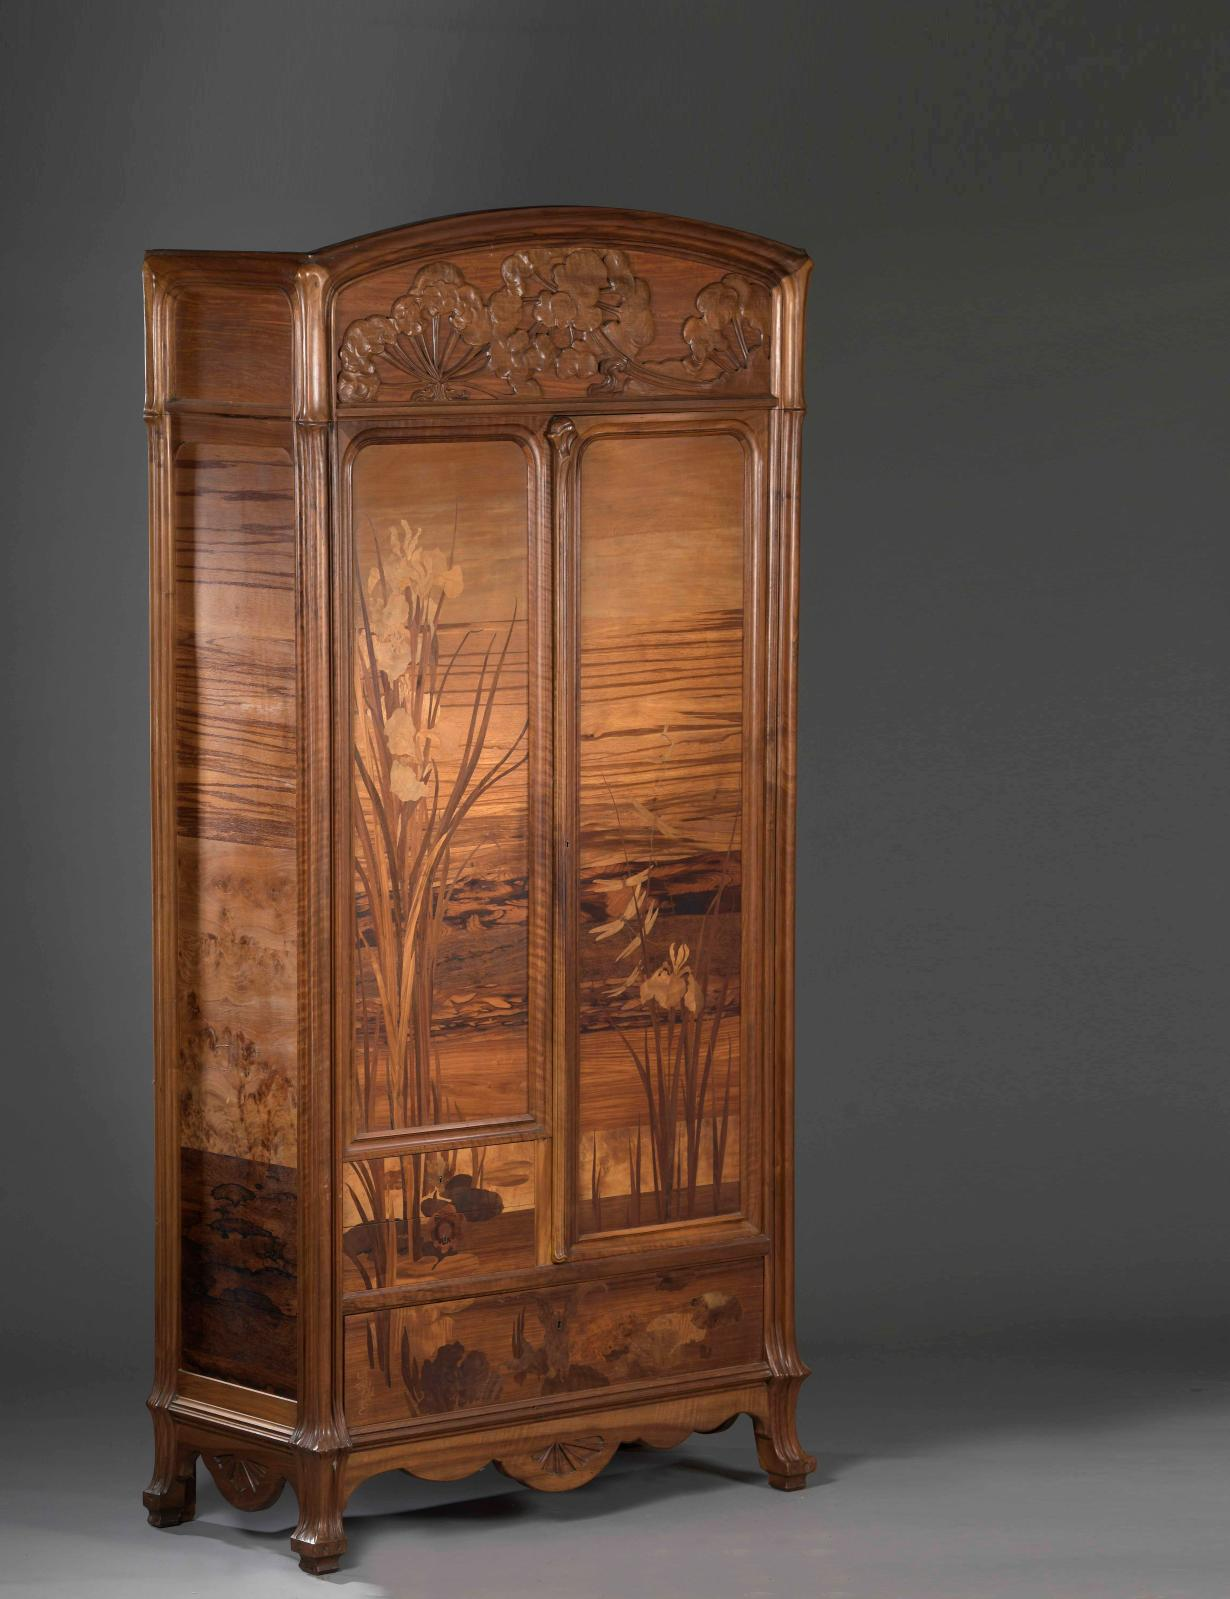 Émile Gallé (1846-1904), armoire with umbellifers in carved, moulded walnut and precious wood, wetland iris, dragonfly and butterfly marquetry, front